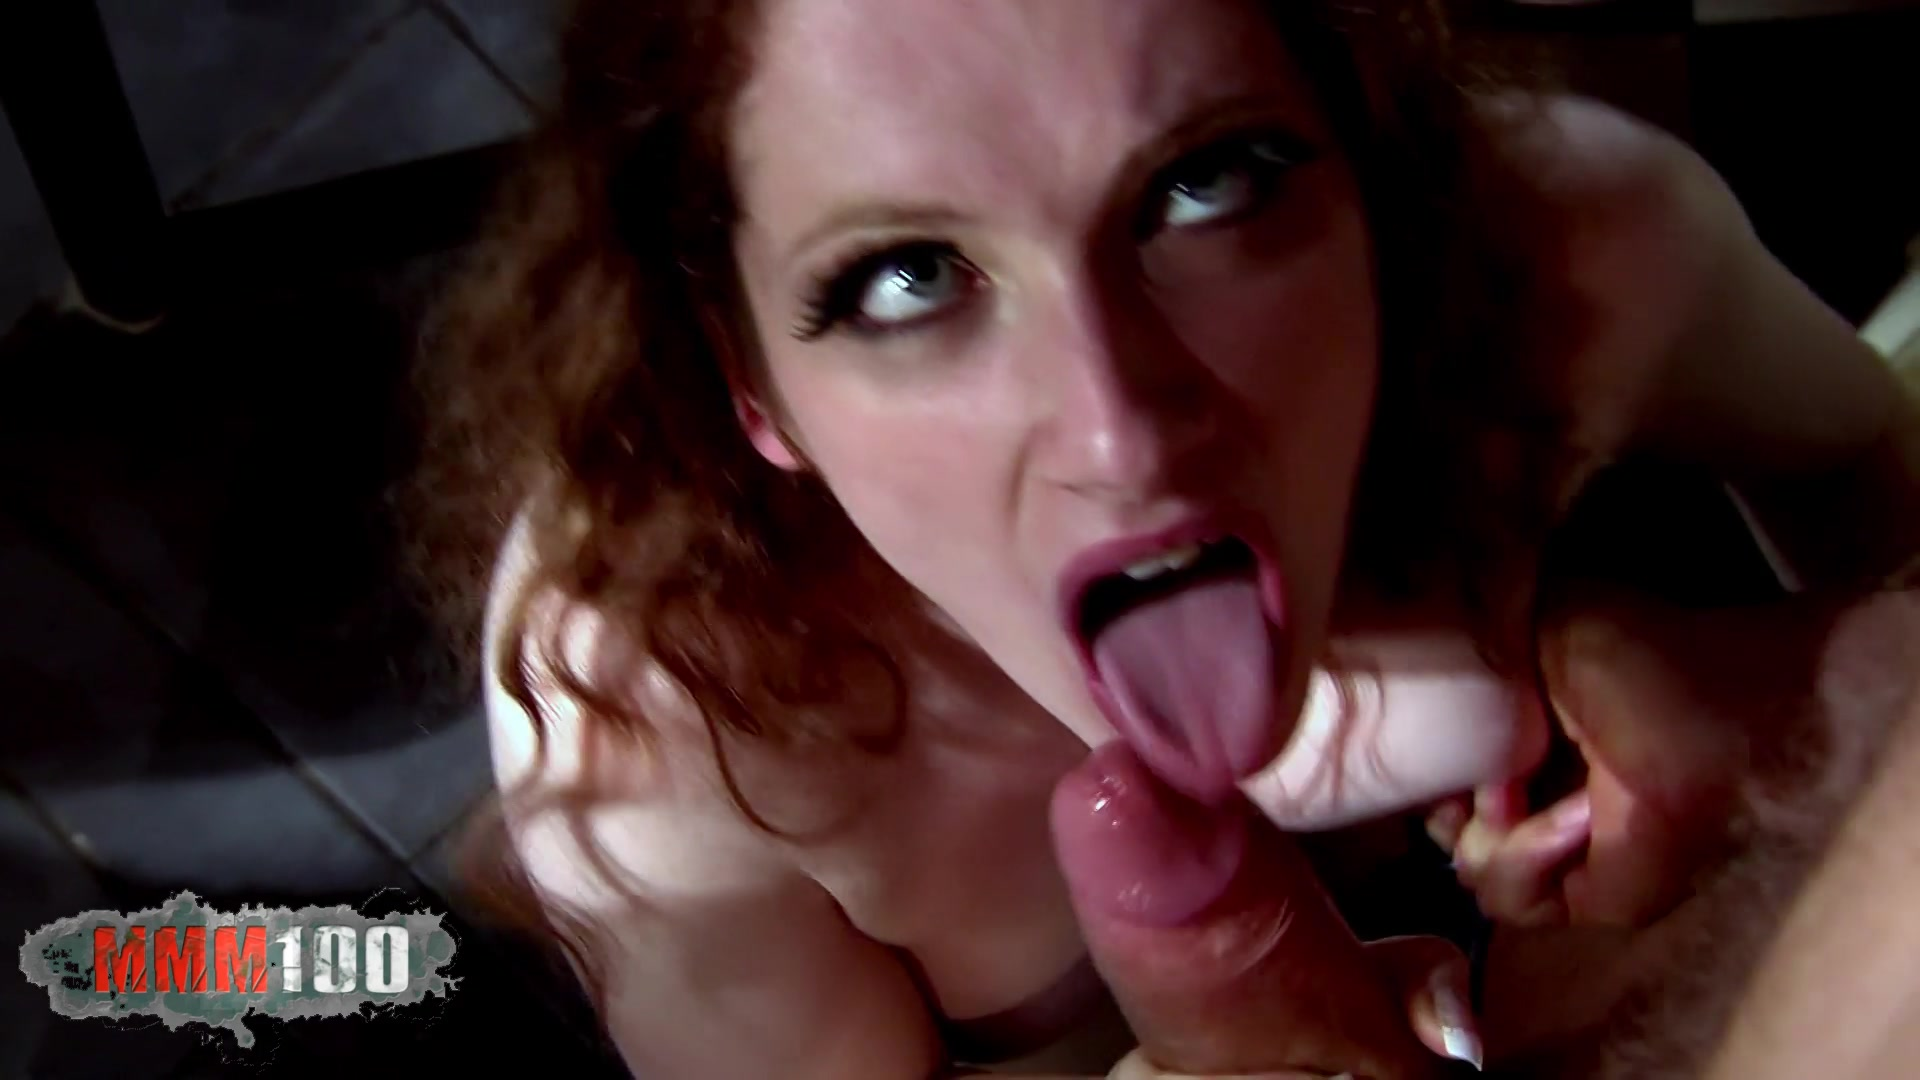 Young deep throat videos